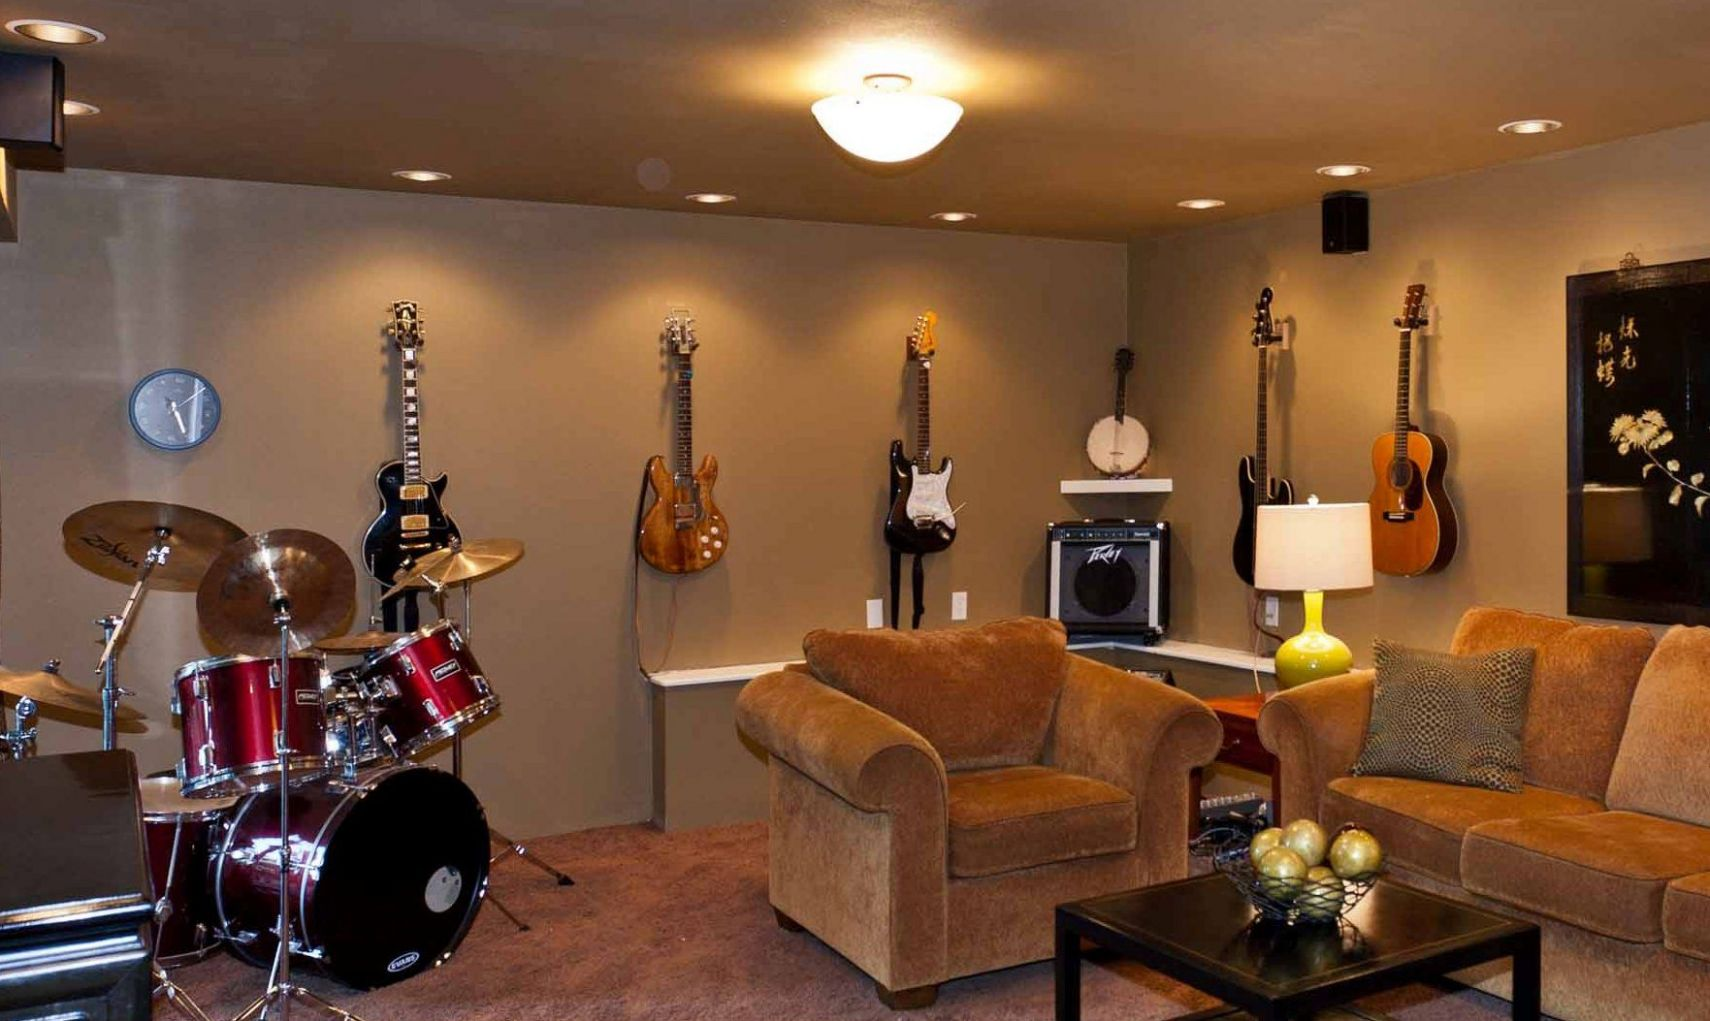 music room | Home music rooms - wall decor ideas music room